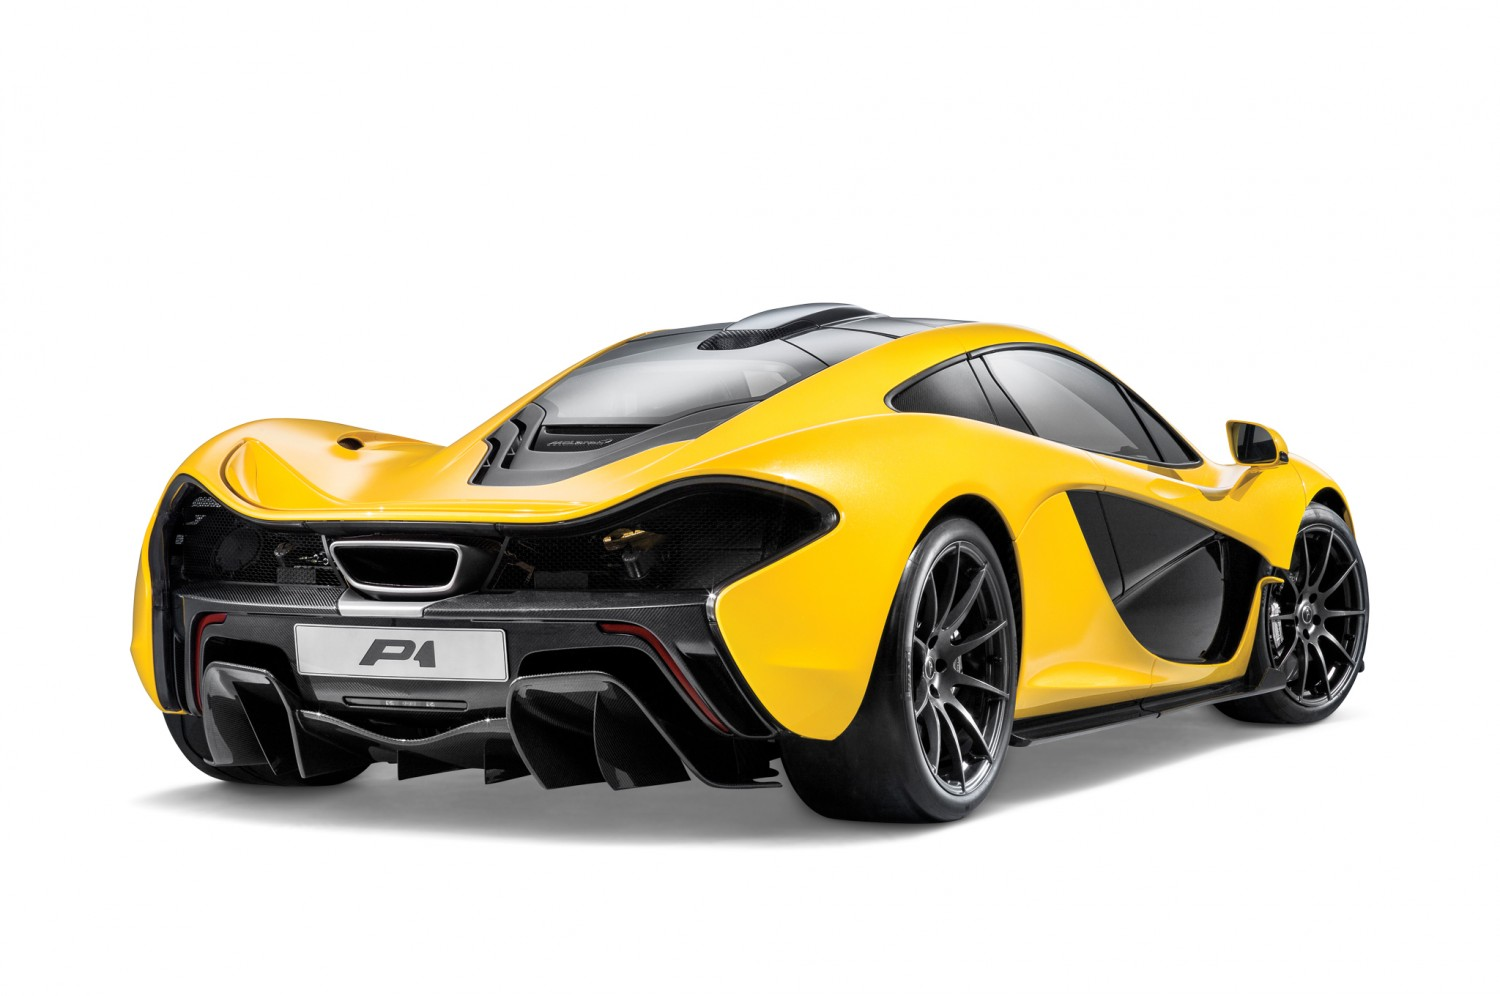 2014 Mclaren P1 Wallpaper For Sale Top Auto Magazine 1500x996